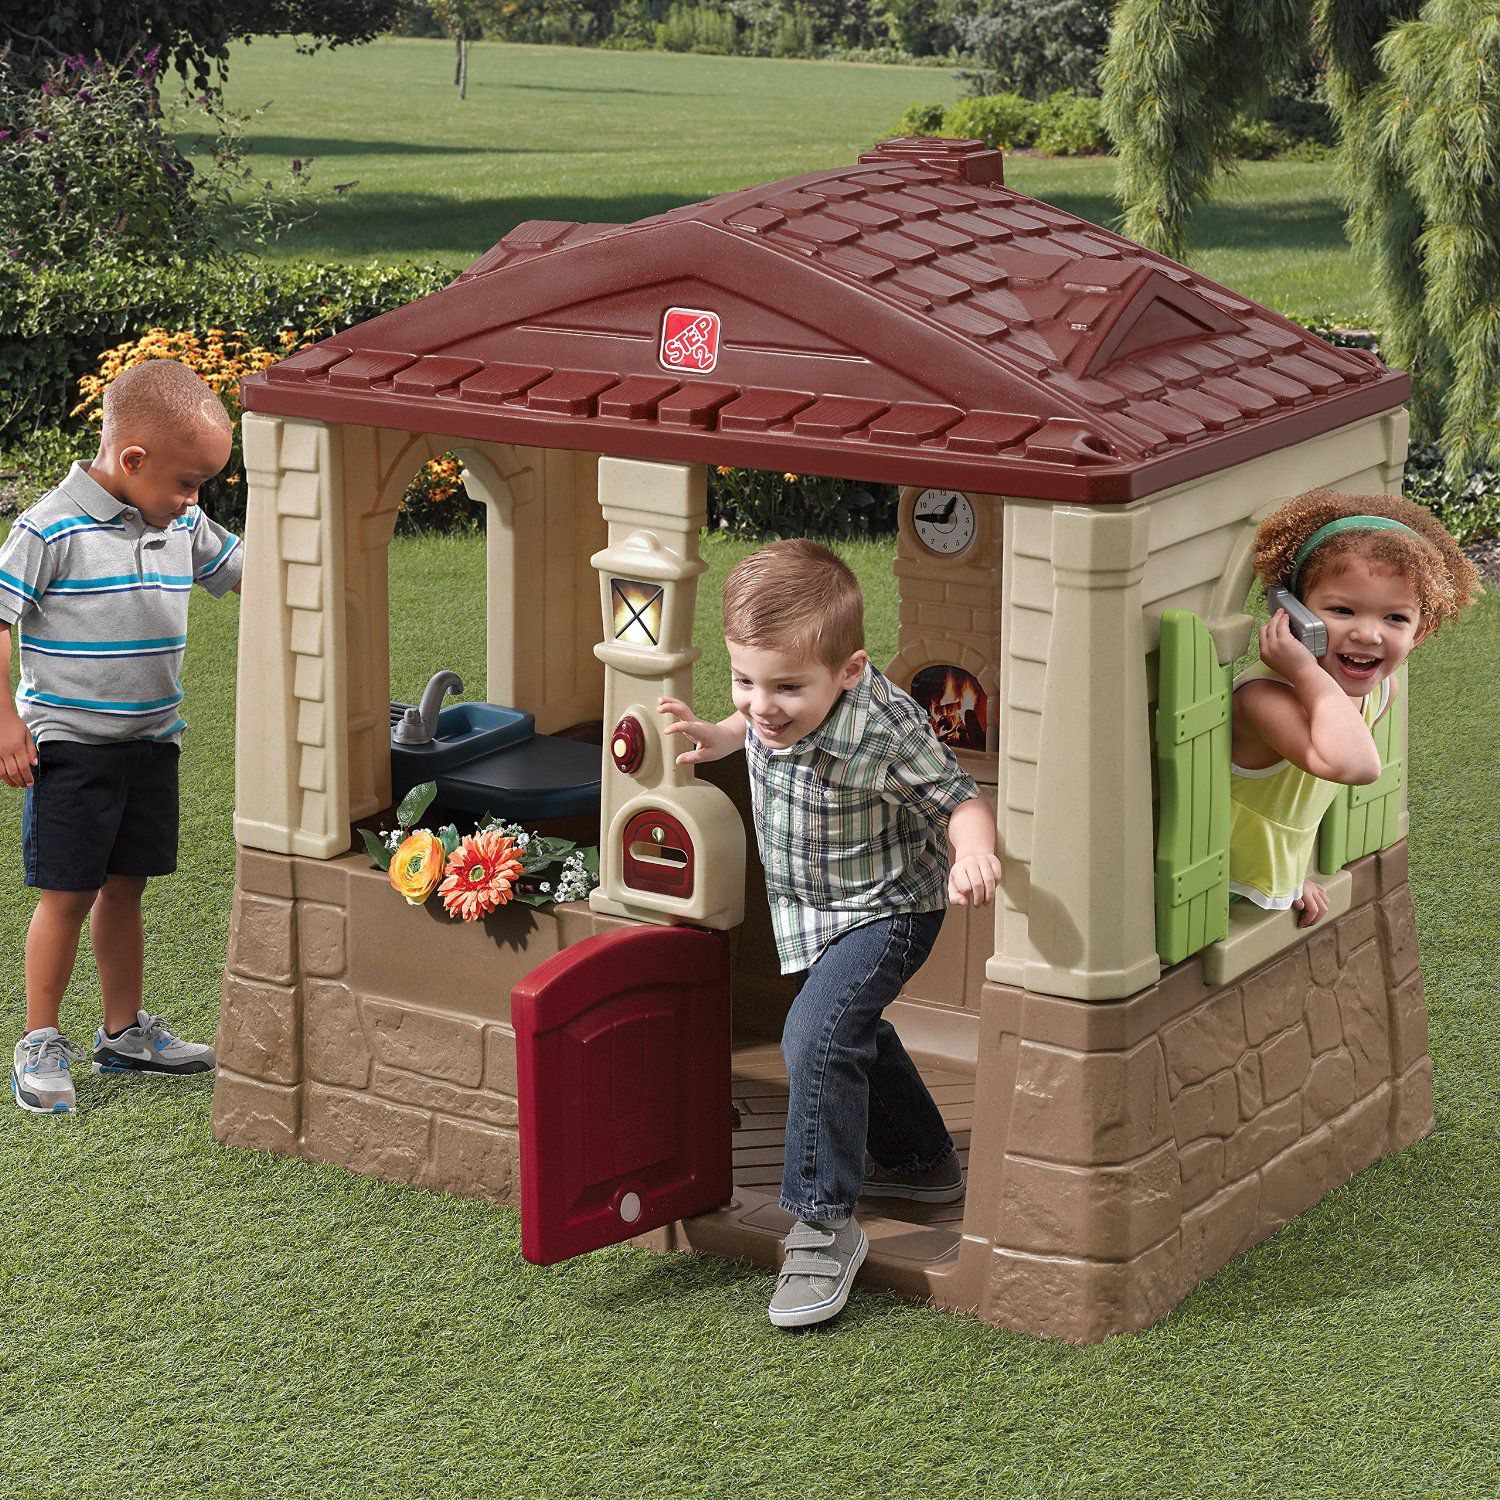 playhouse kits to buy and build on your own